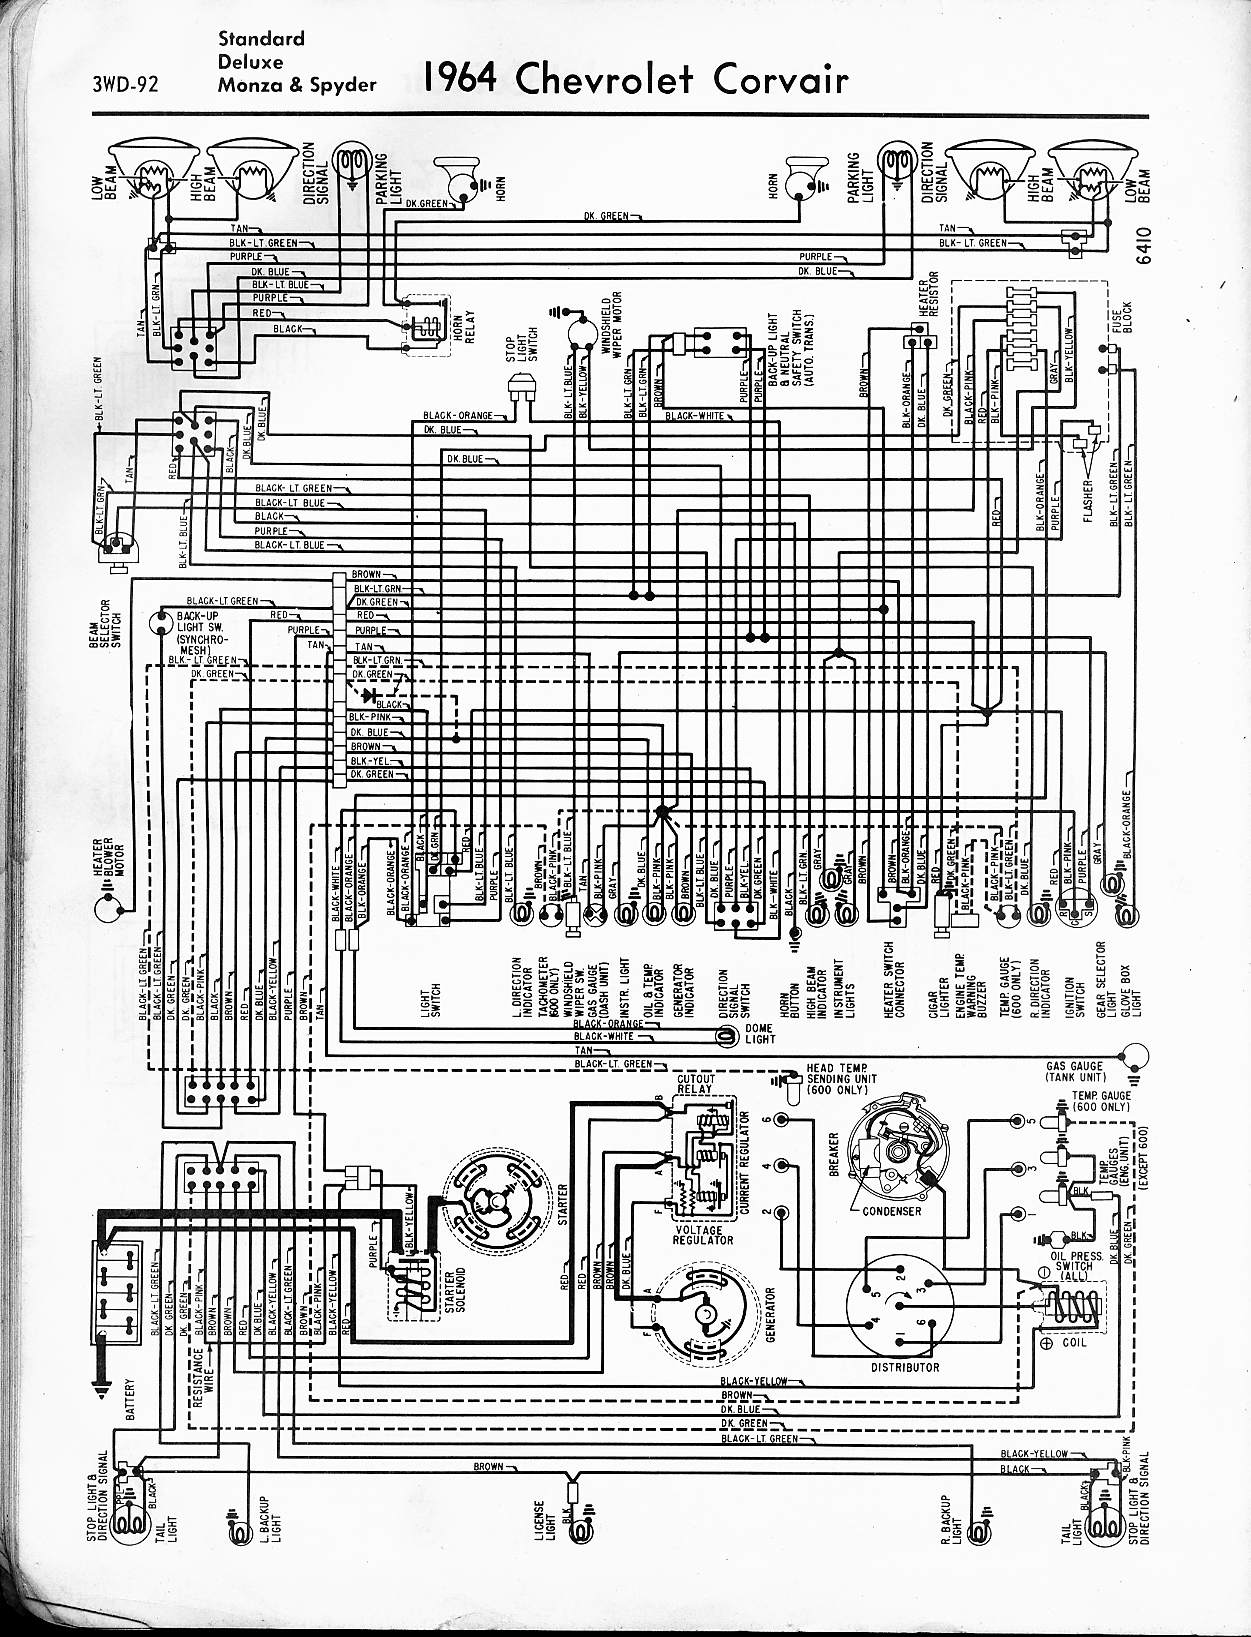 MWireChev64_3WD 092 57 65 chevy wiring diagrams 1966 chevy impala wiring diagram at reclaimingppi.co